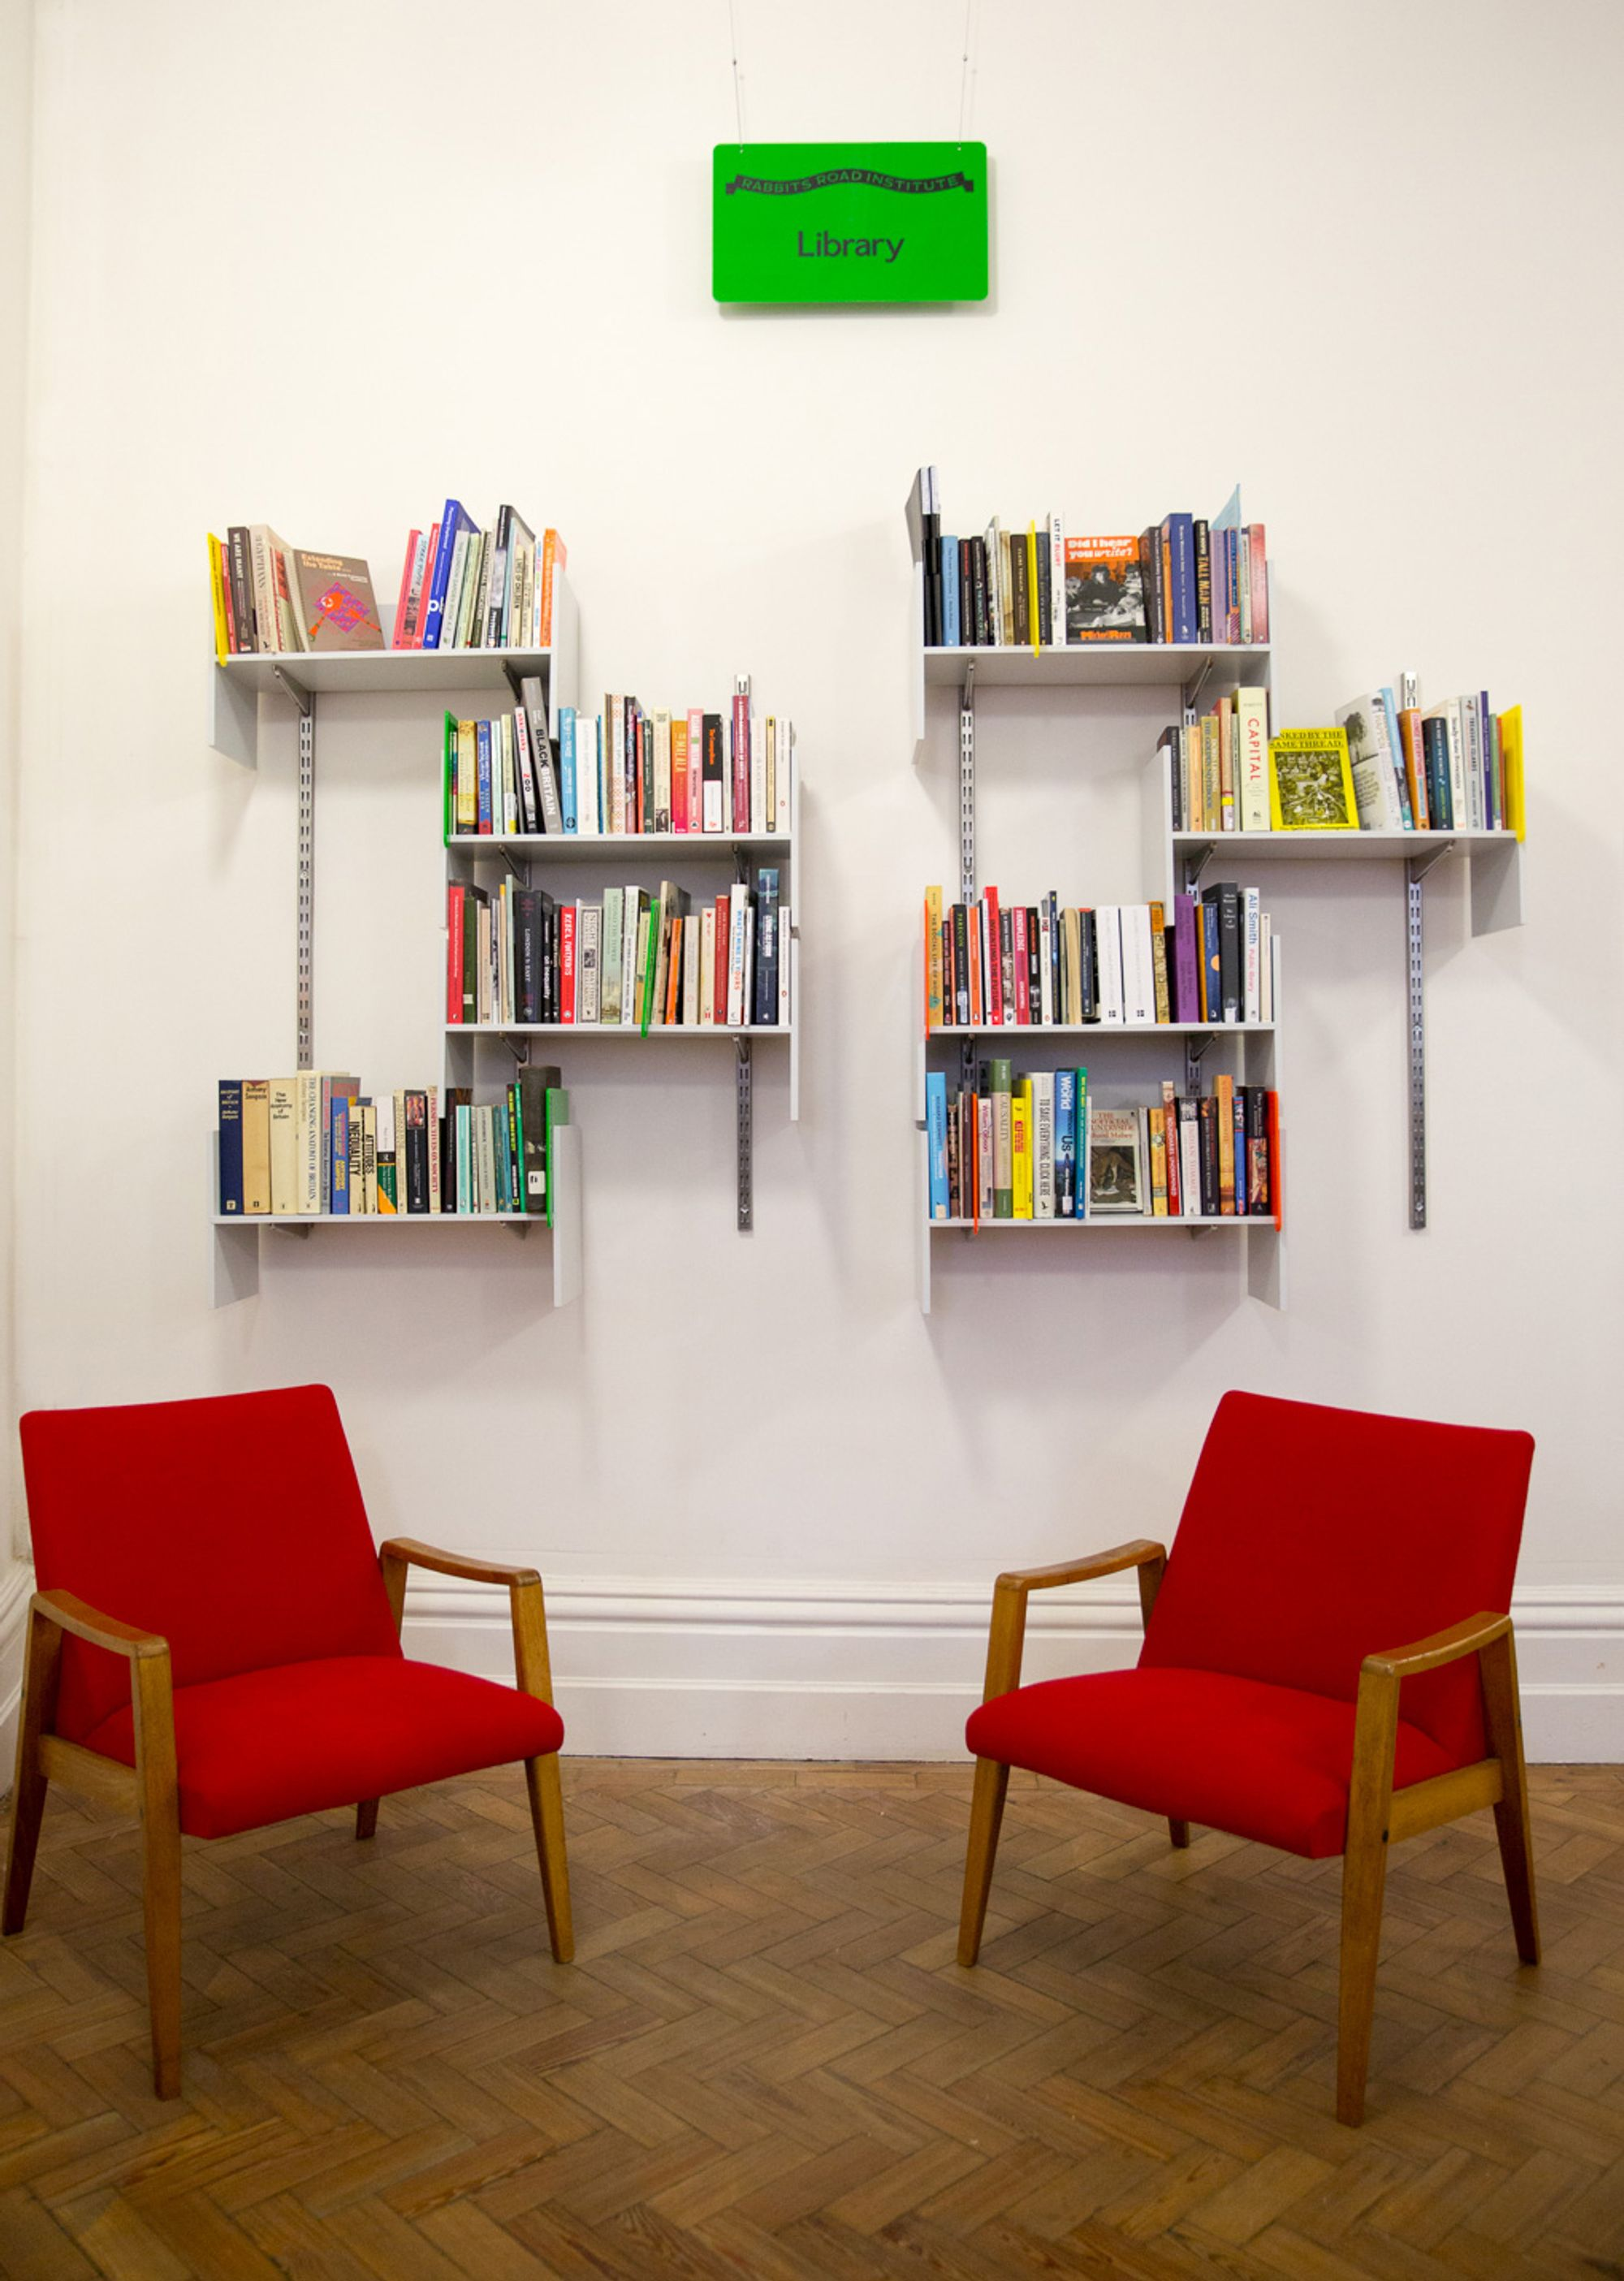 Eight wall mounted shelves full of books on a white wall; a green sign with the word 'Library' hangs above; in the foreground, two red midcentury lounge chairs.